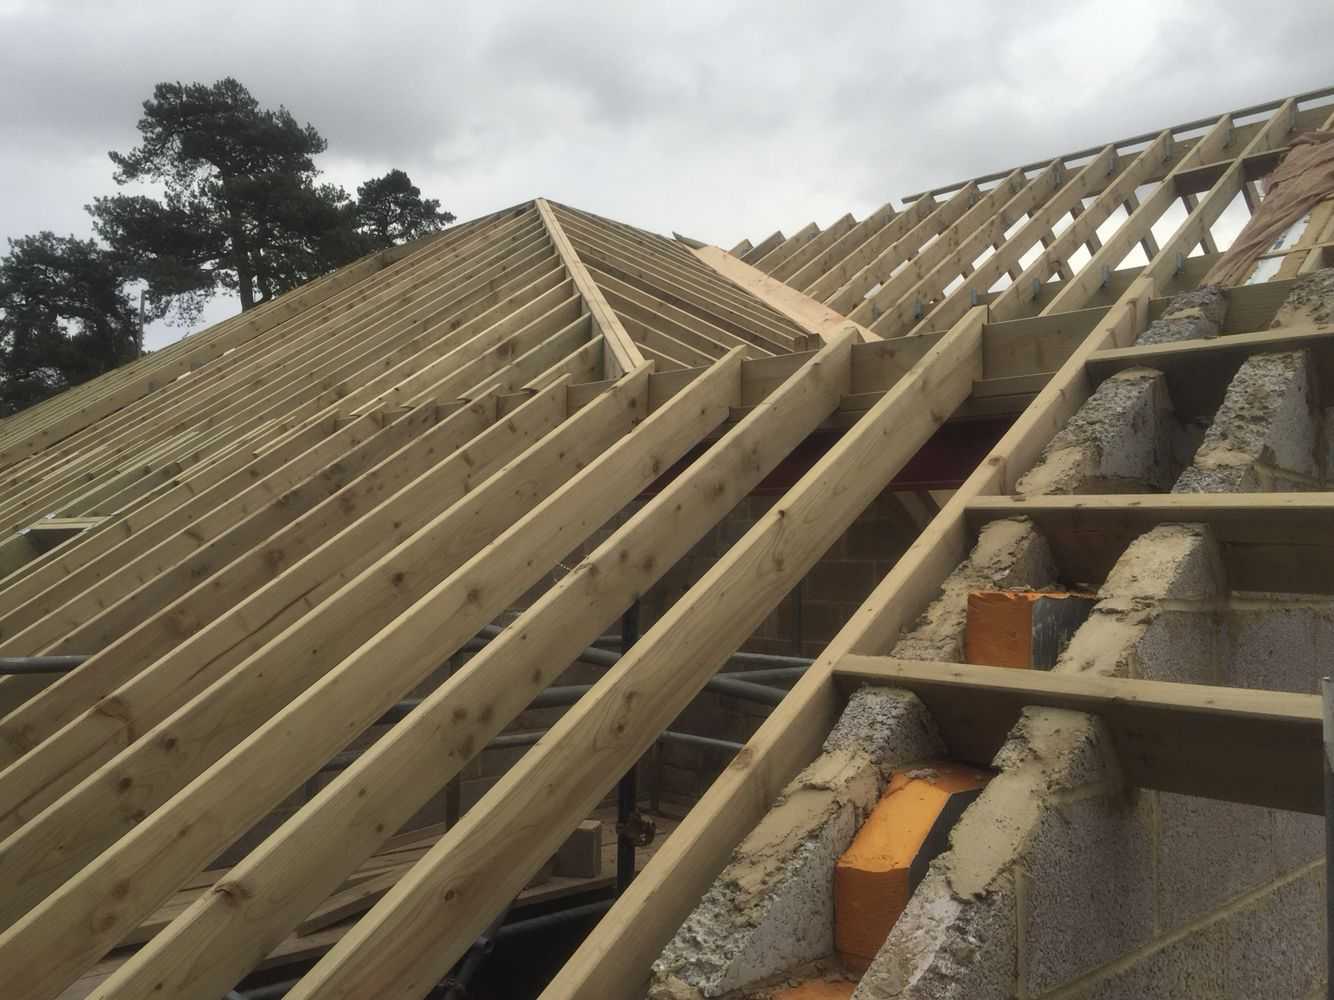 hips, valleys and gable | Roof design, Design, Wood